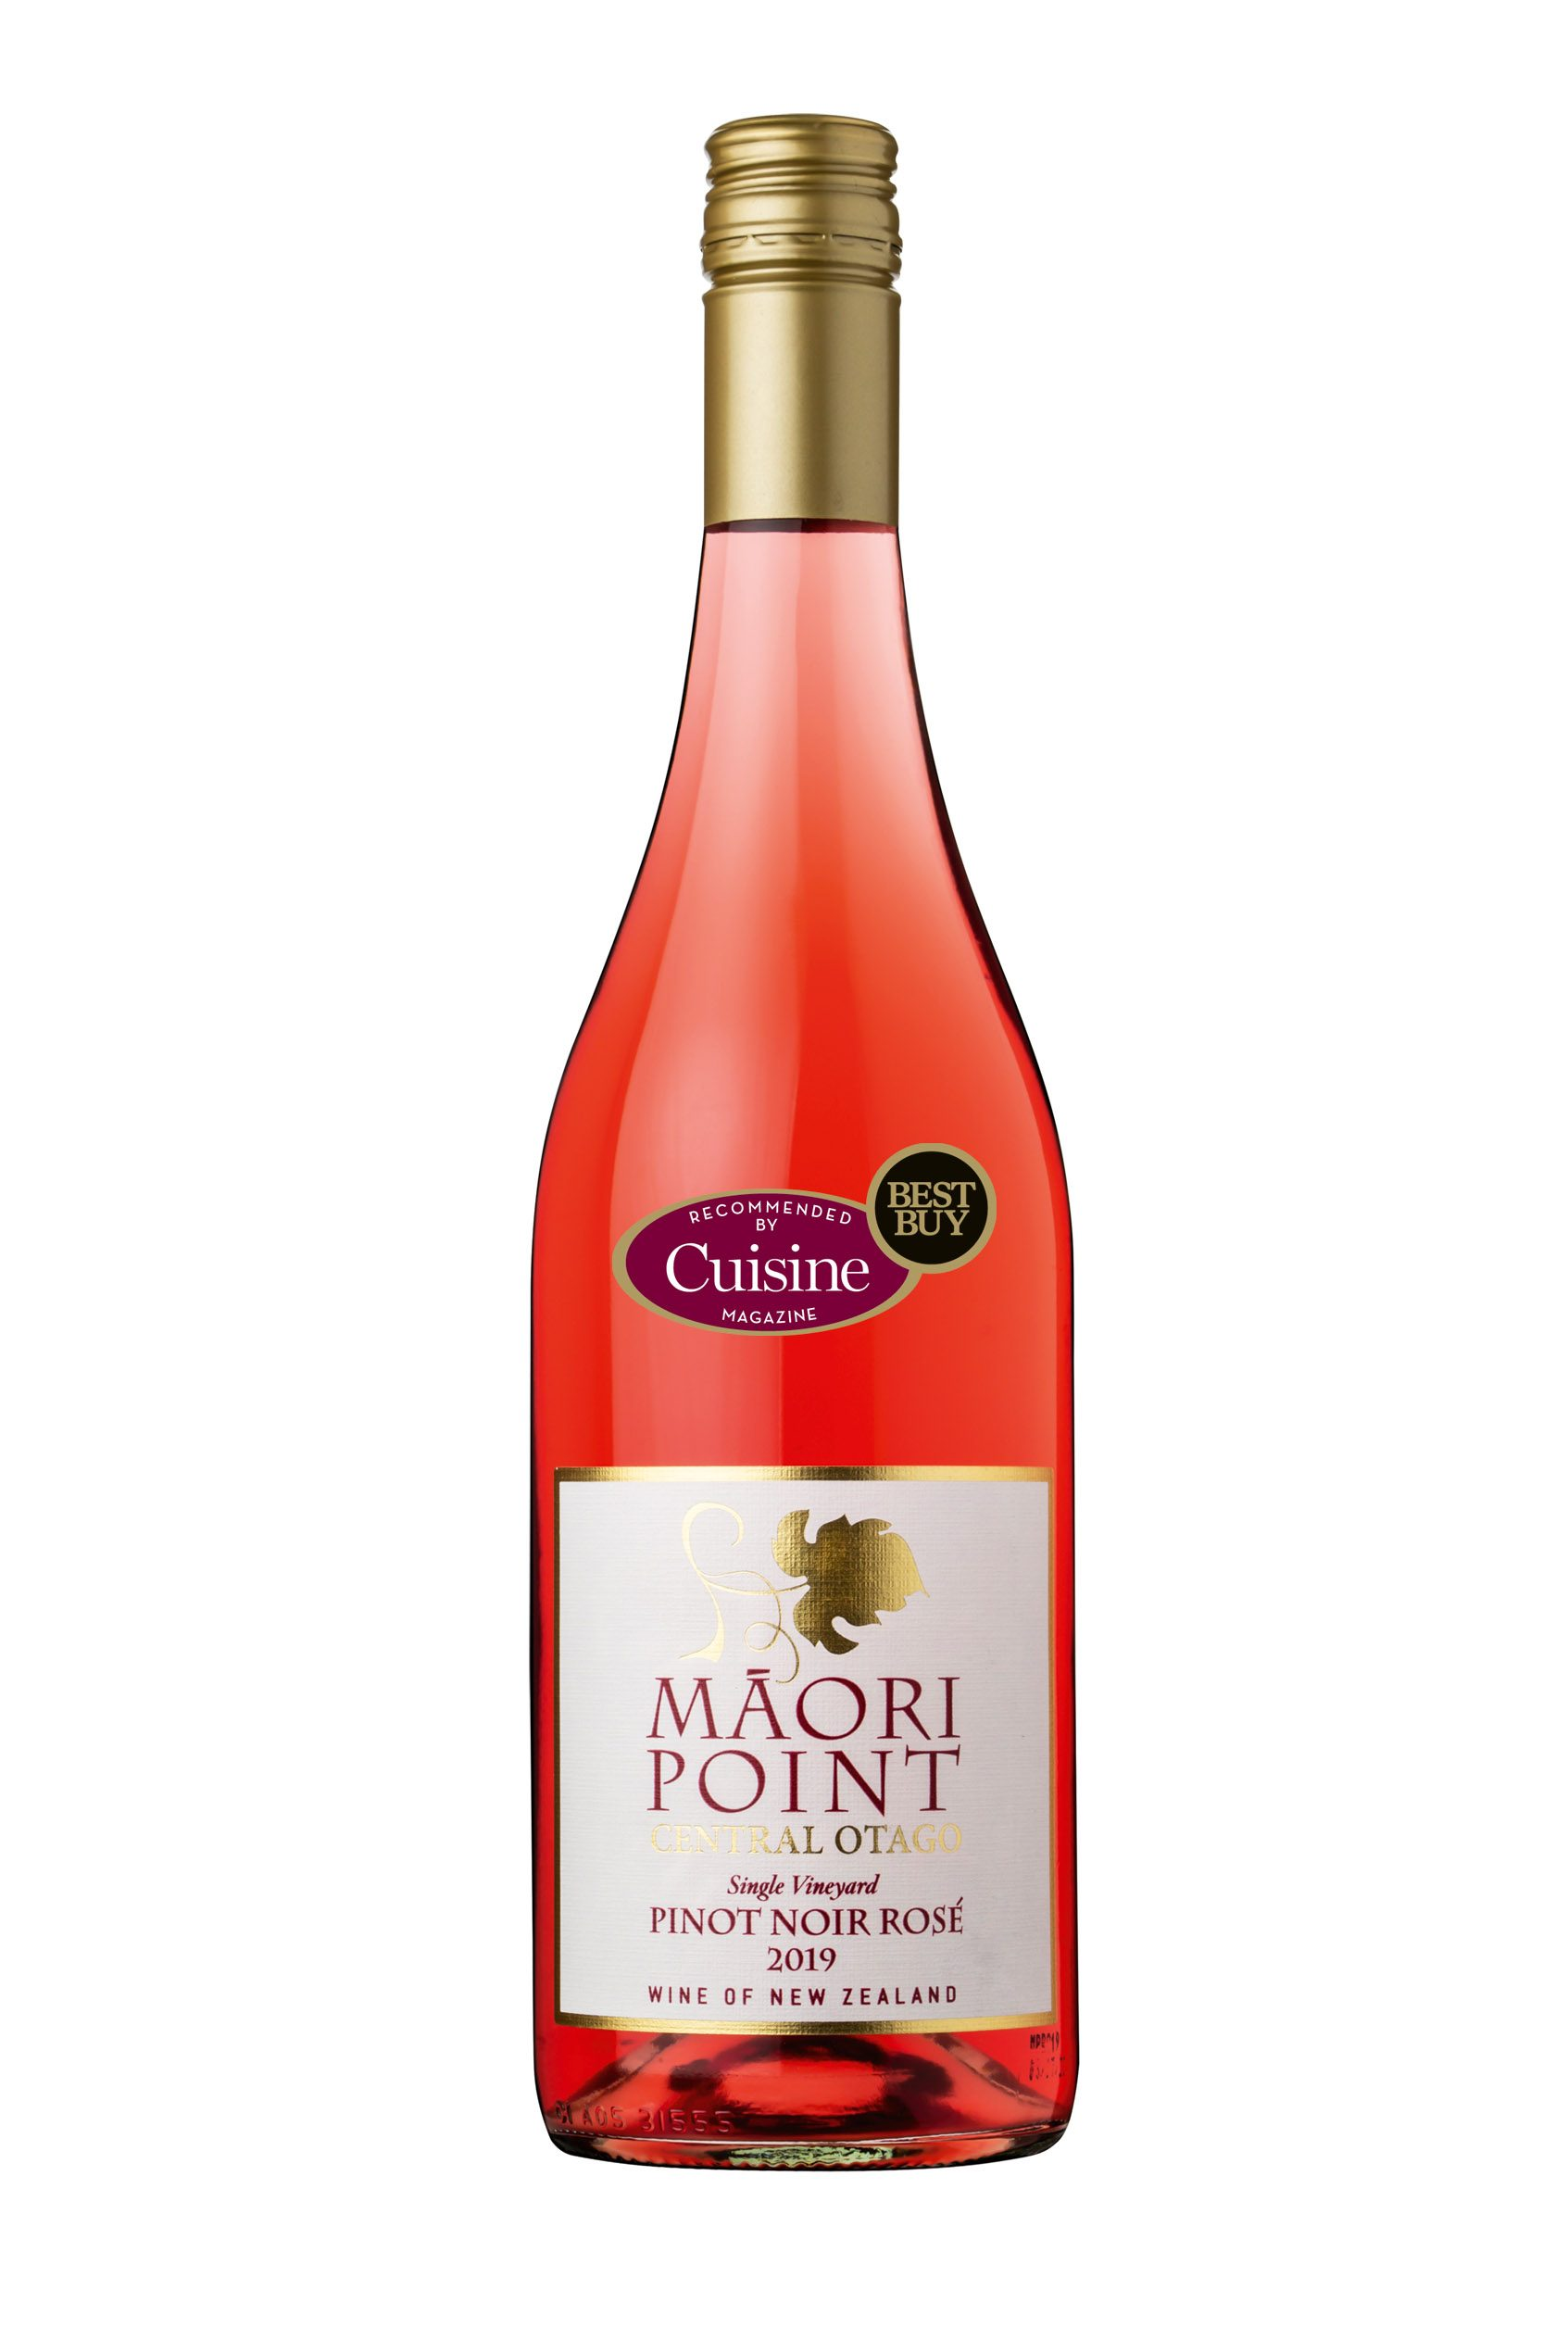 Maori Point Pinot Noir Rosé 2019 (Central Otago)